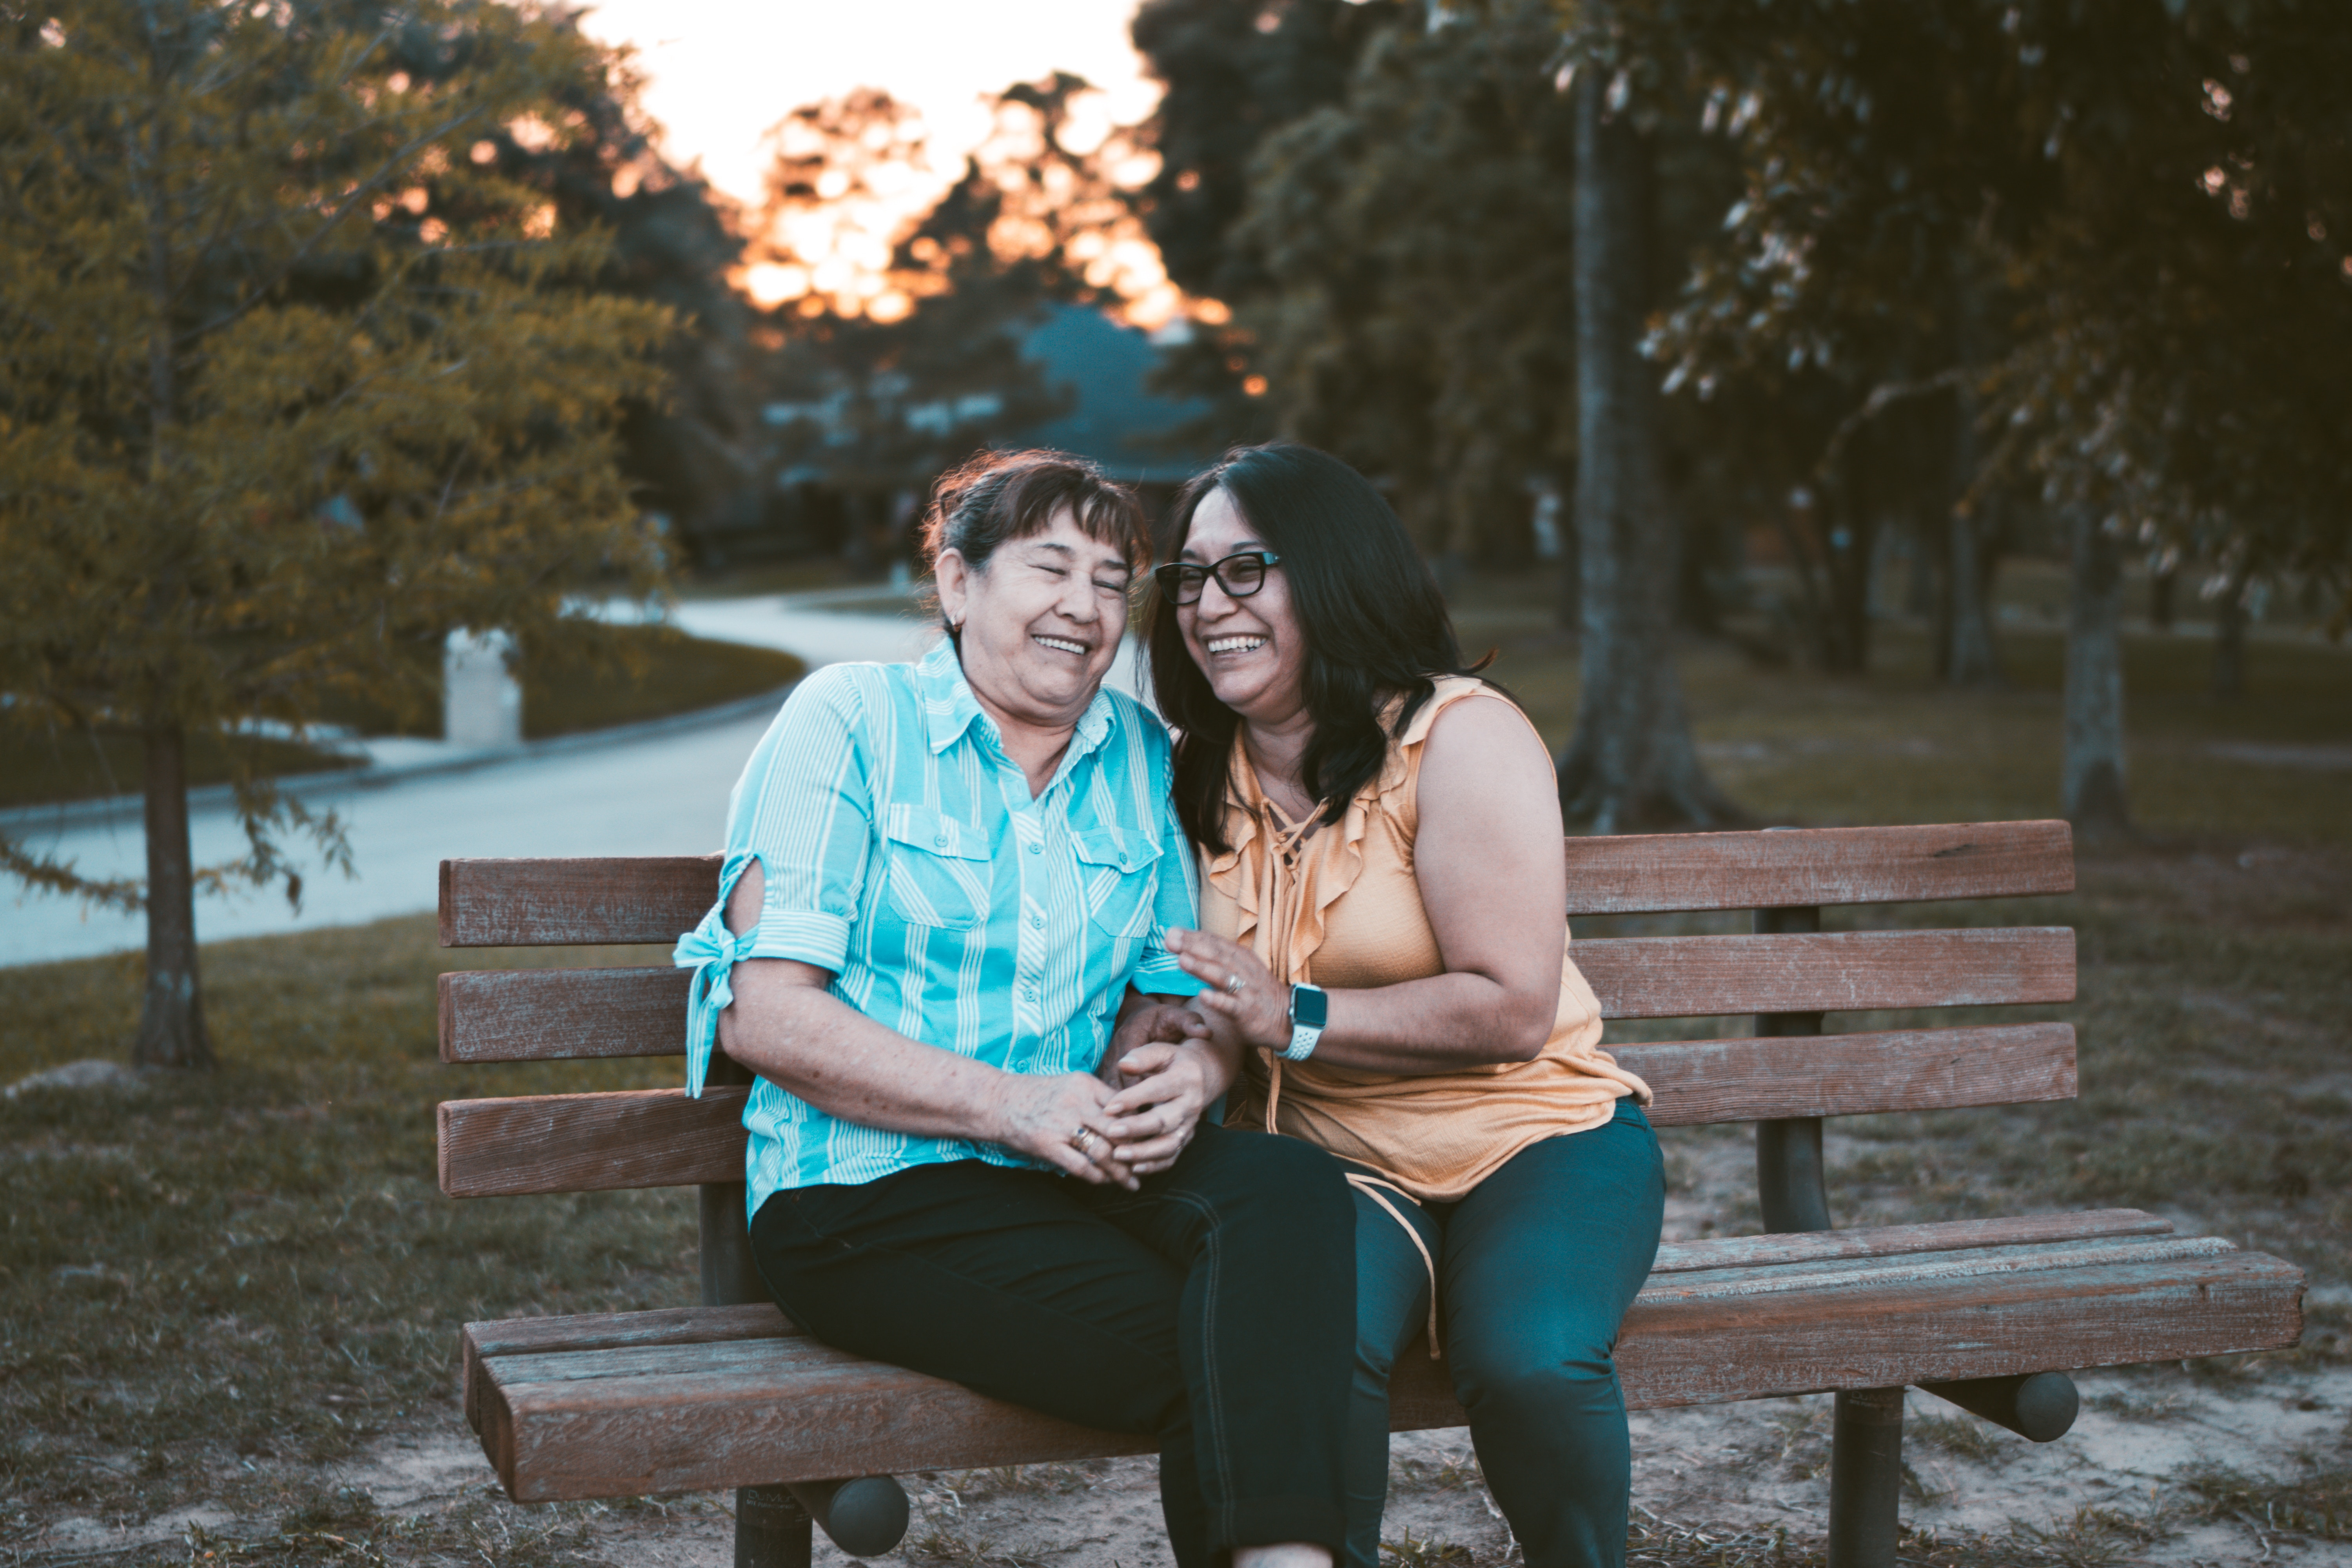 mom and daughter sitting on bench